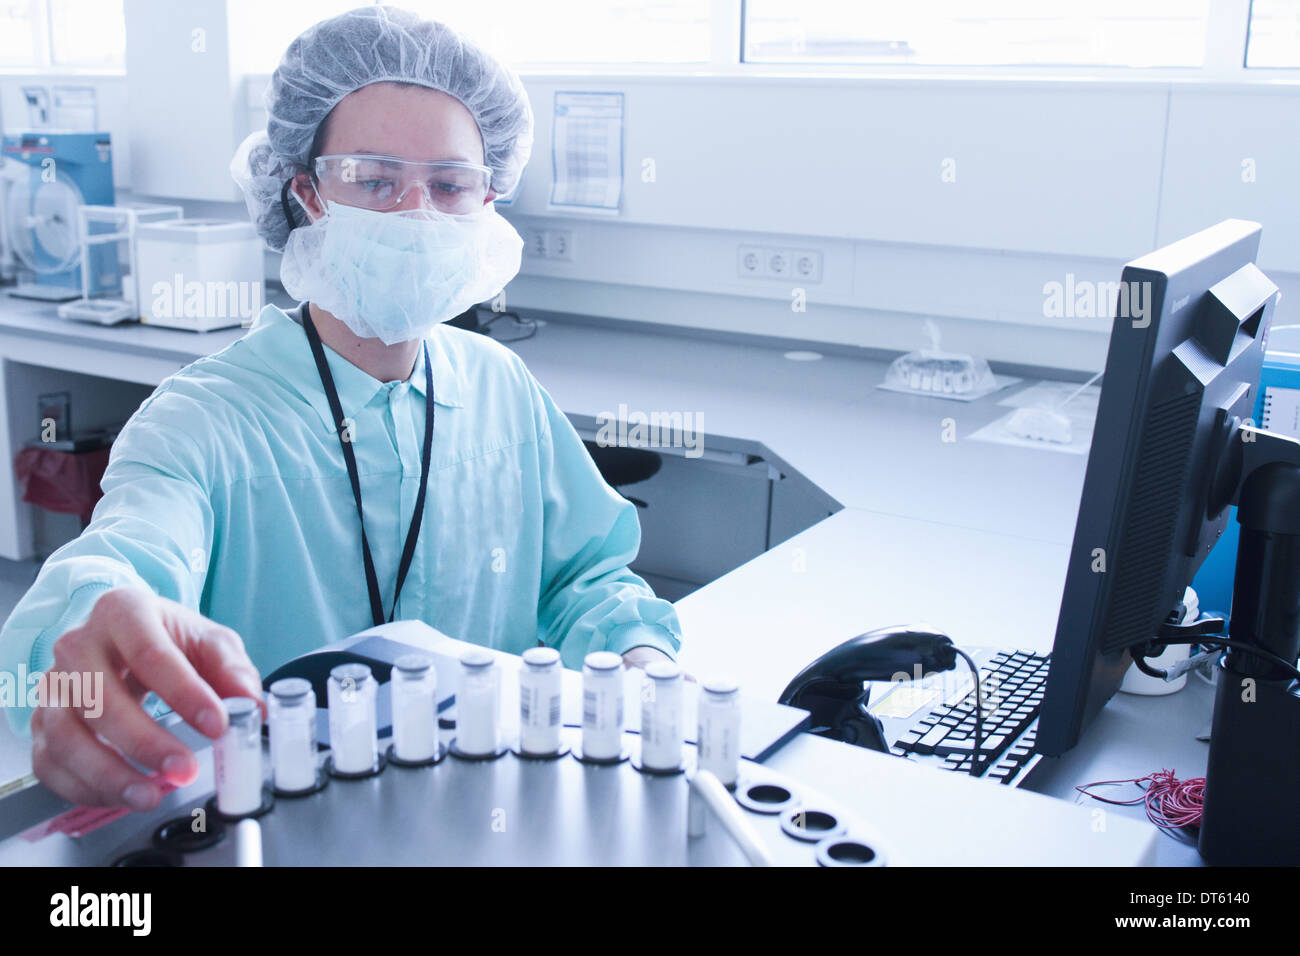 Laboratory technician placing containers into carousel - Stock Image